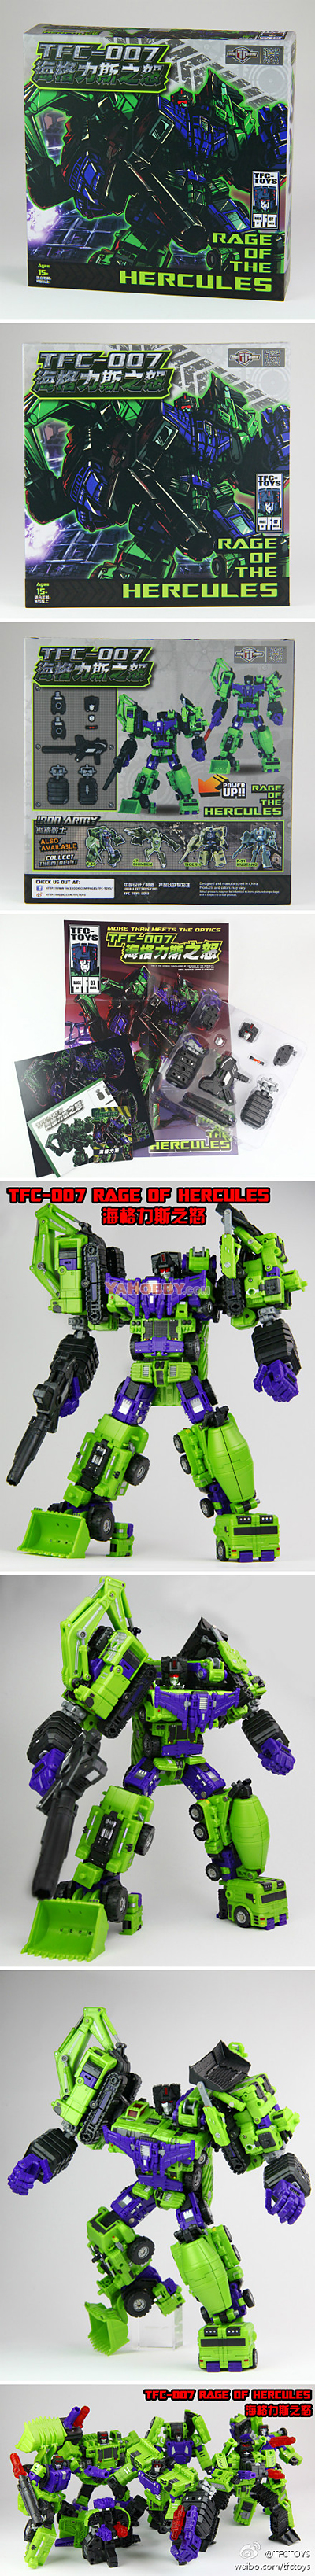 Transformers TFC-007 Rage of Hercules Upgrade Set